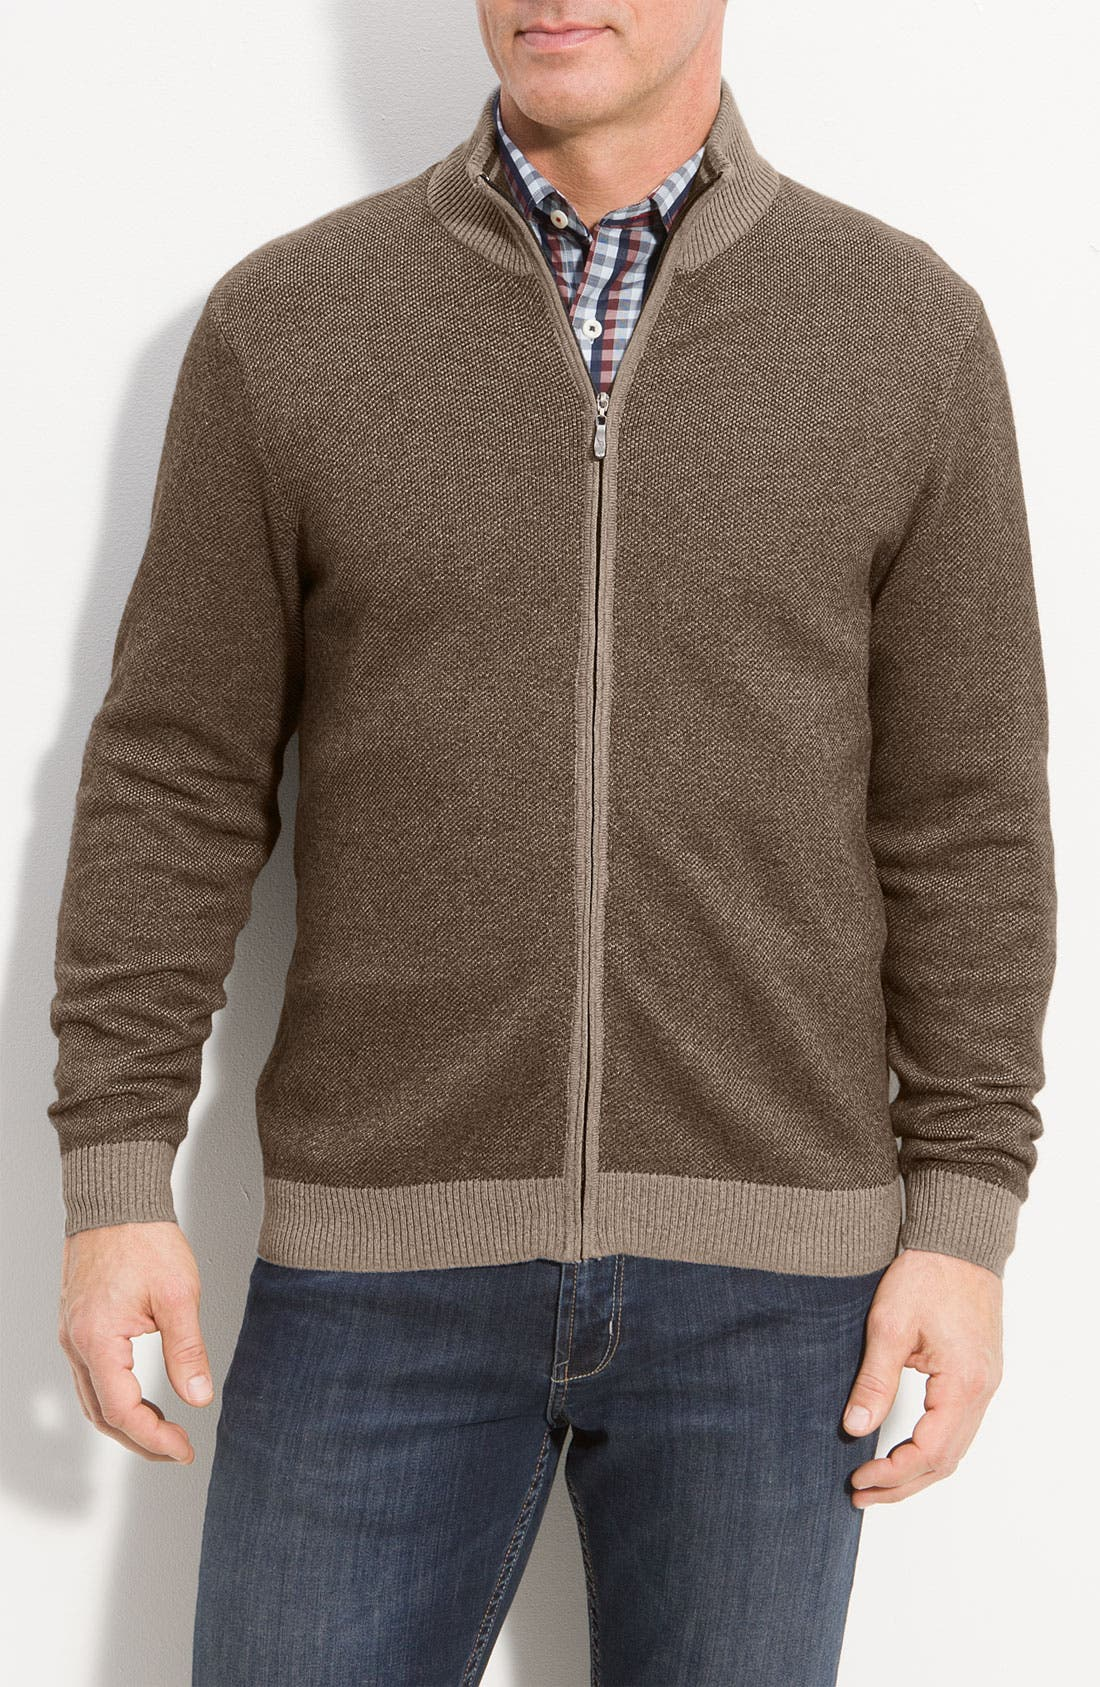 Alternate Image 1 Selected - Tommy Bahama 'Firenze' Zip Front Sweater